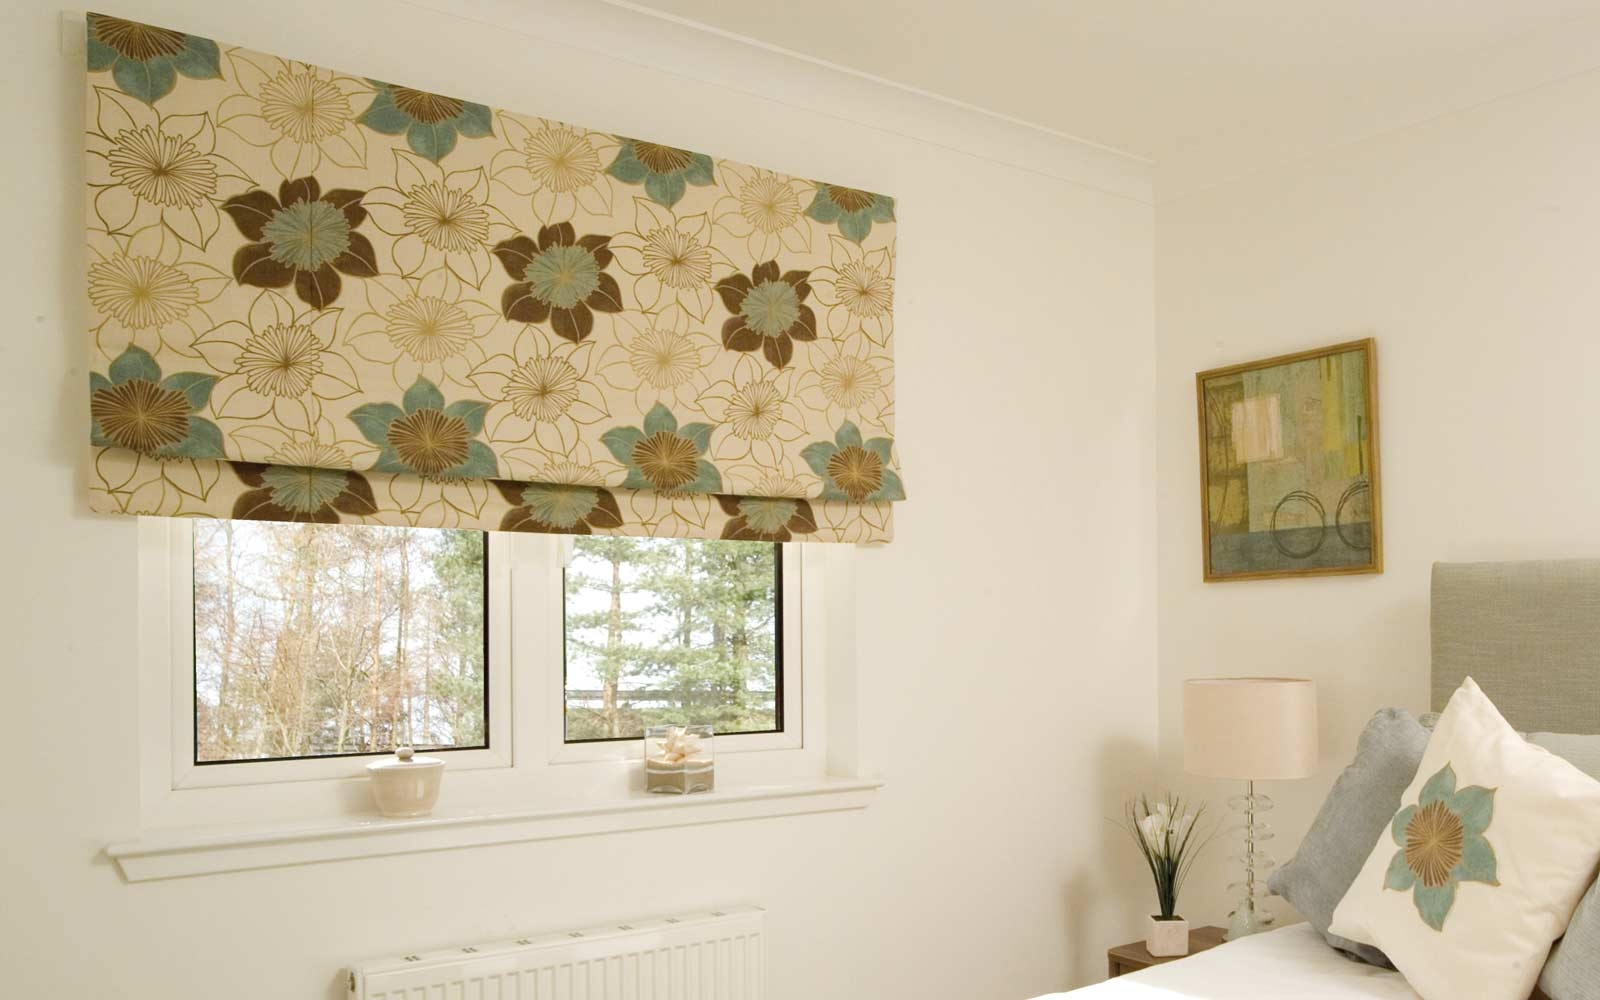 Roman Blinds Surrey Blinds Shutters For Roman Blackout Blinds (Image 14 of 15)